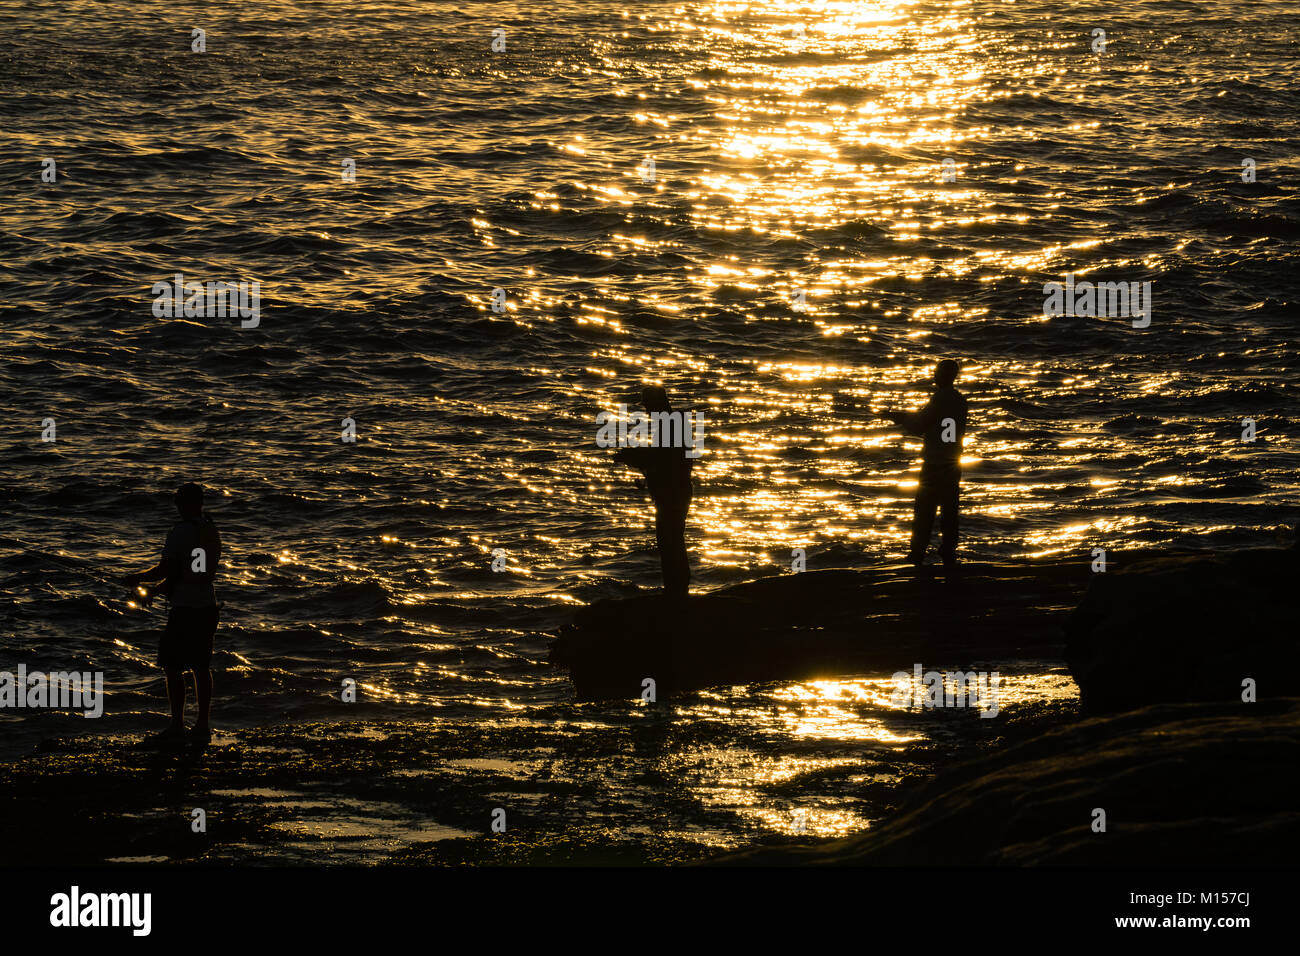 Fishermans's Silhouette - Stock Image